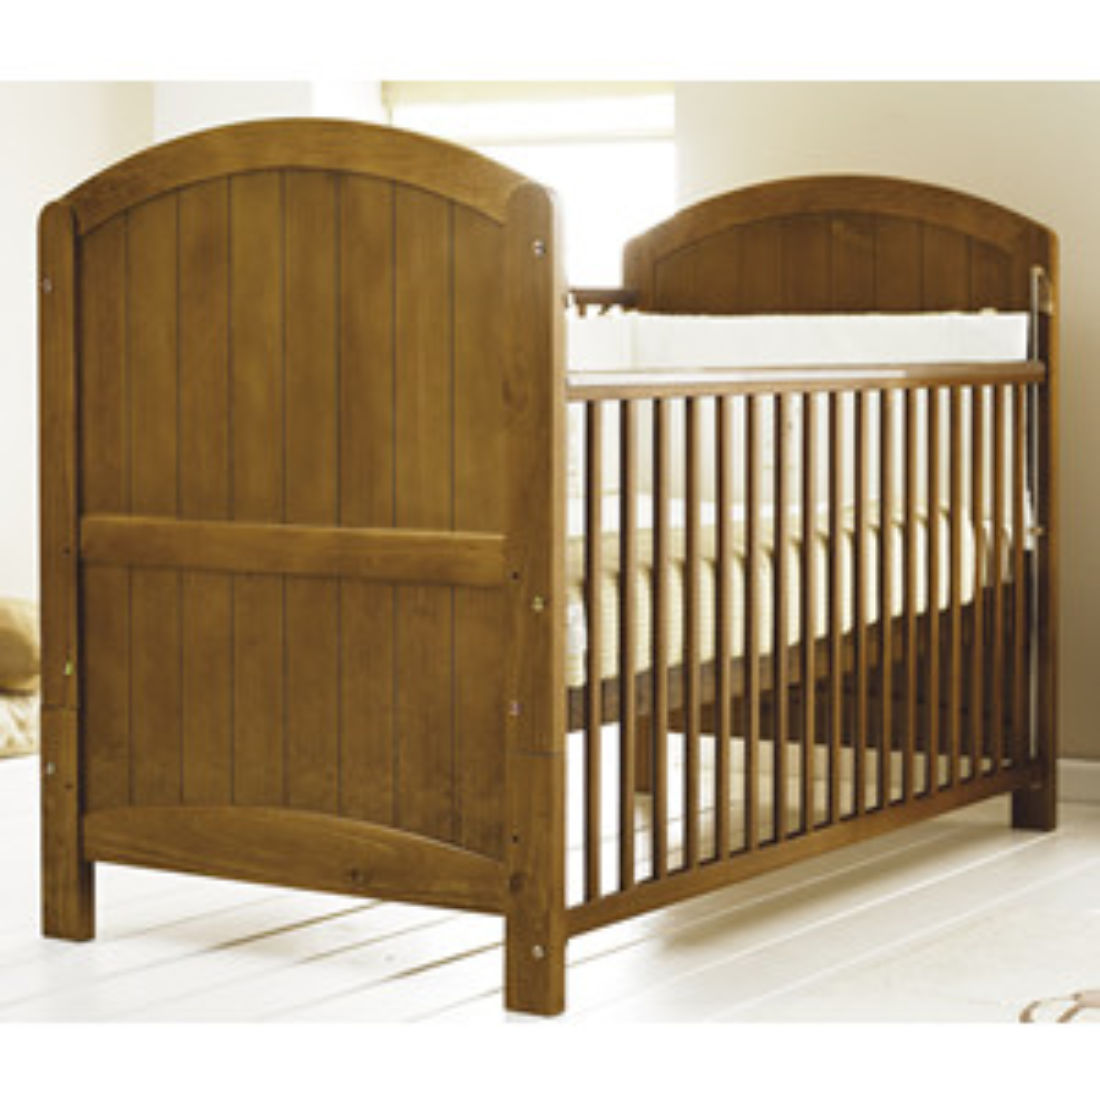 Cosatto Cot Bed Size